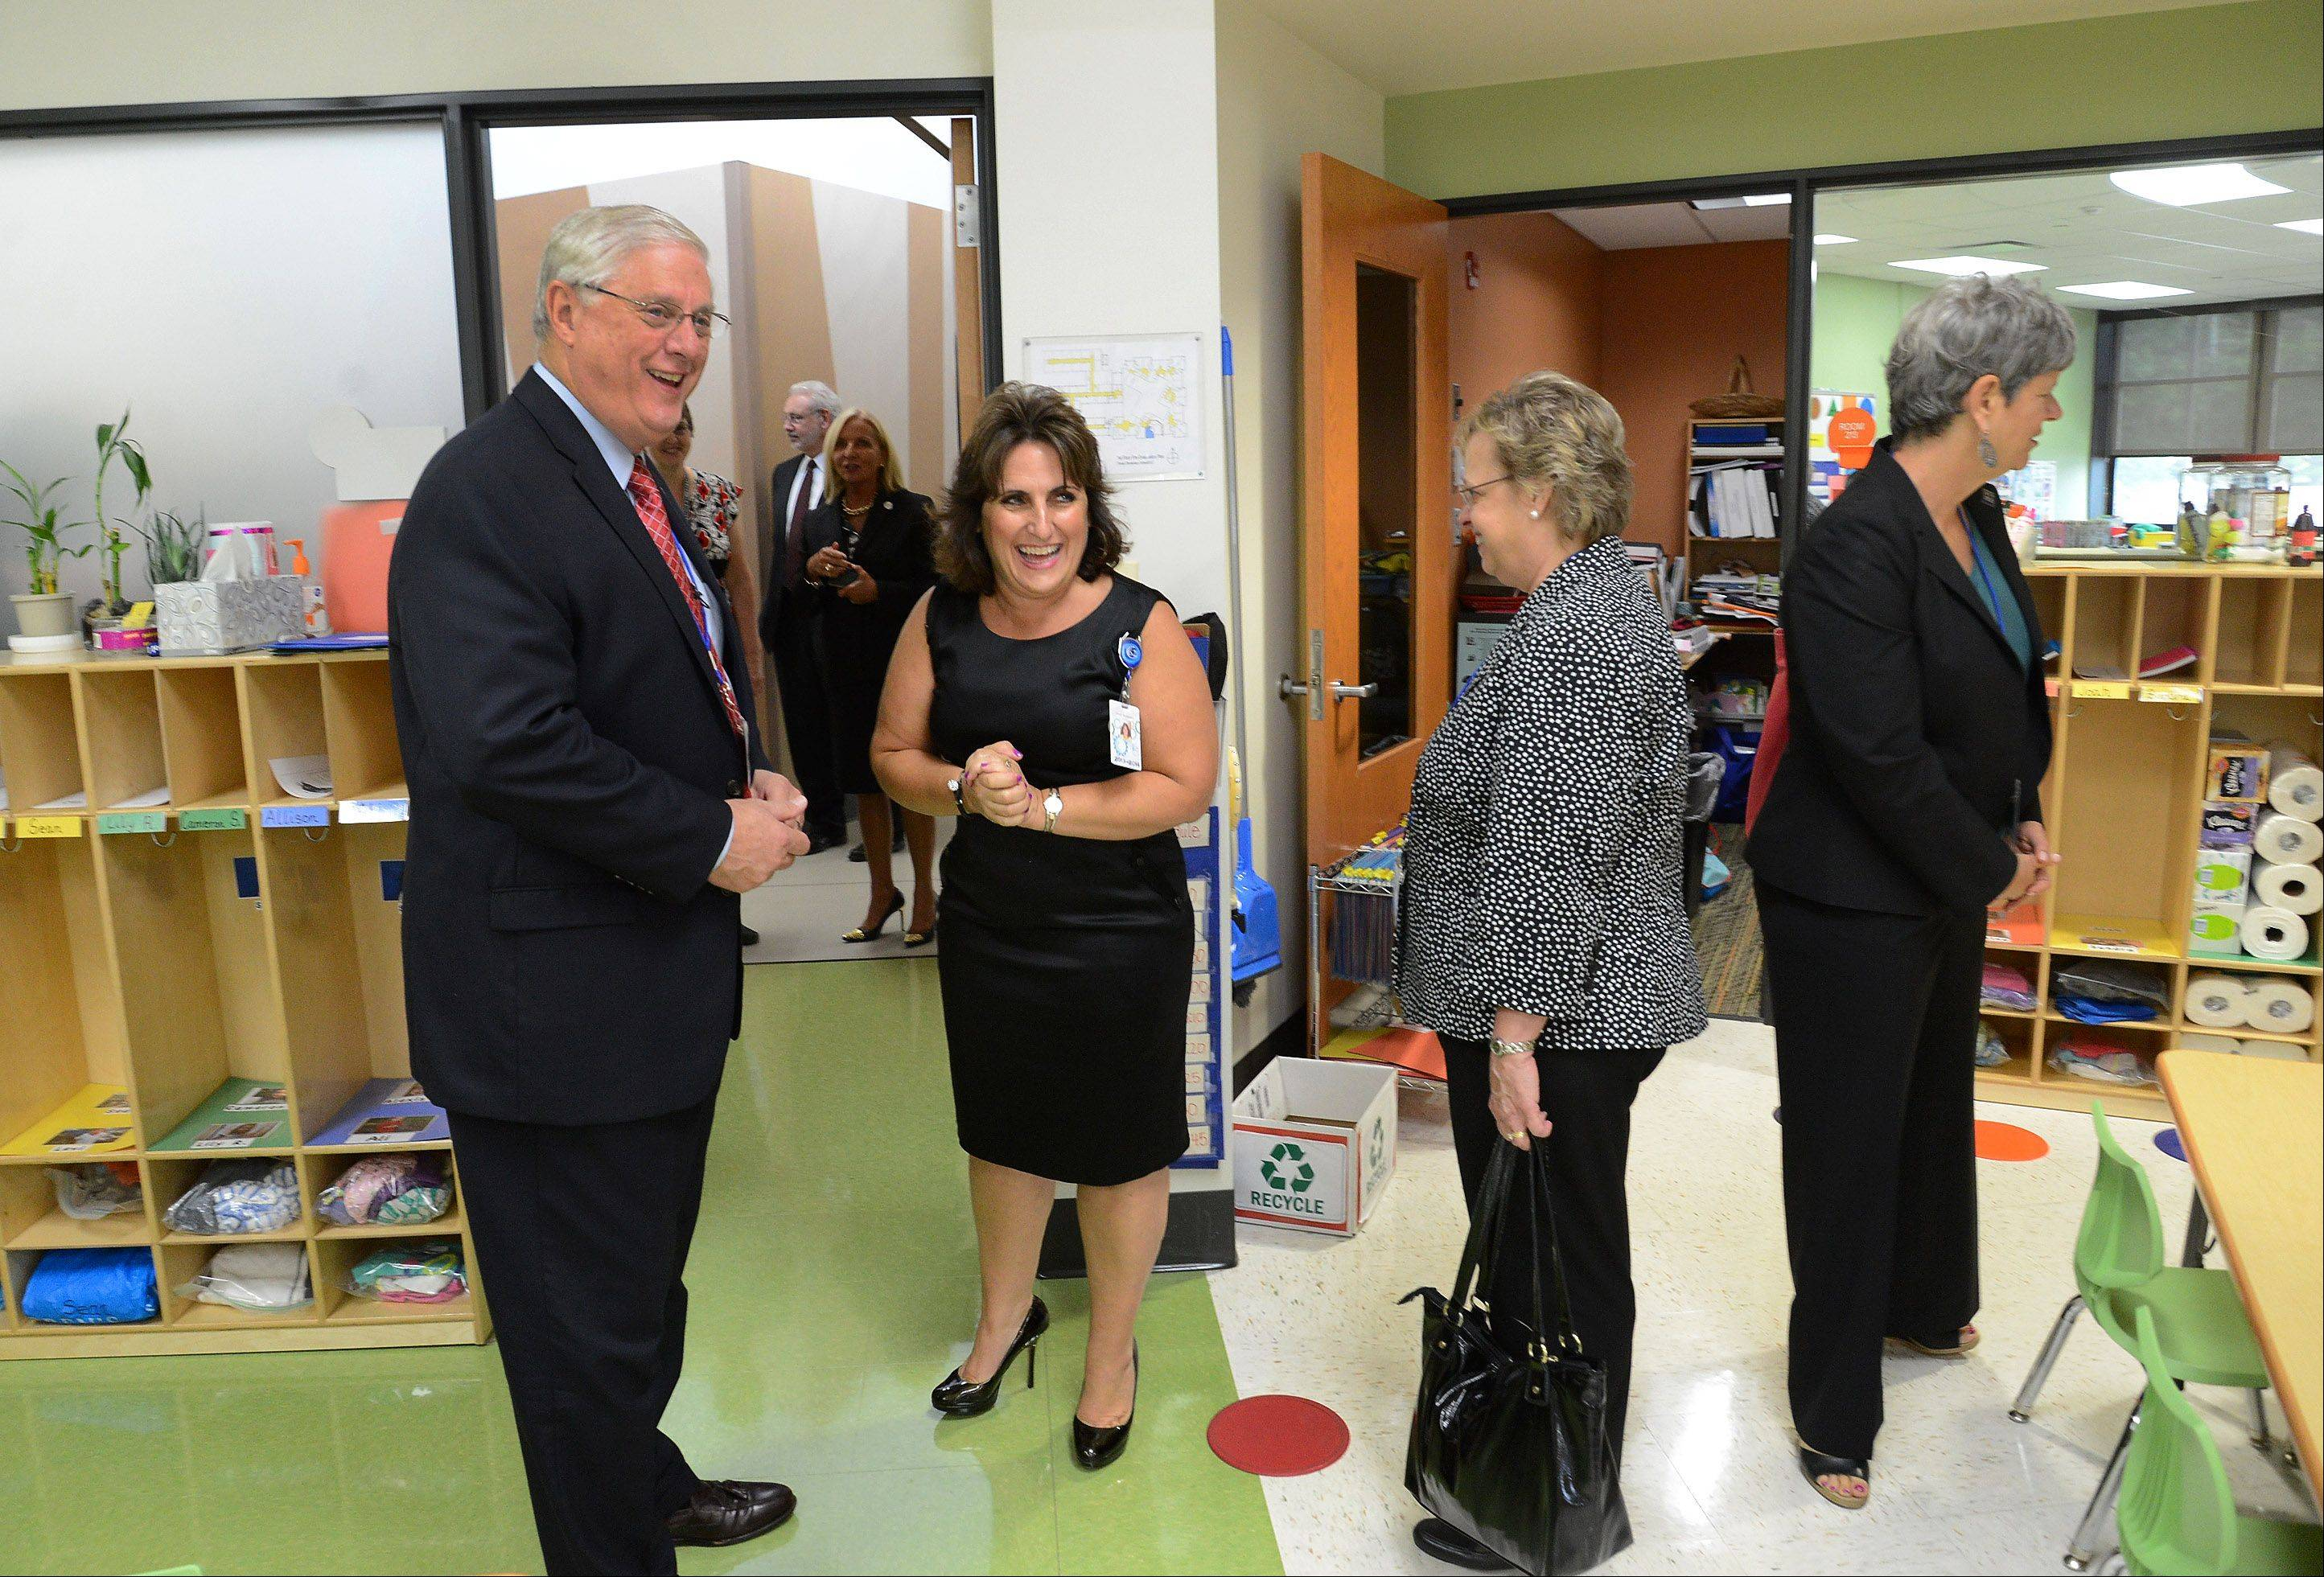 Teacher's union president tours Des Plaines promoting Common Core